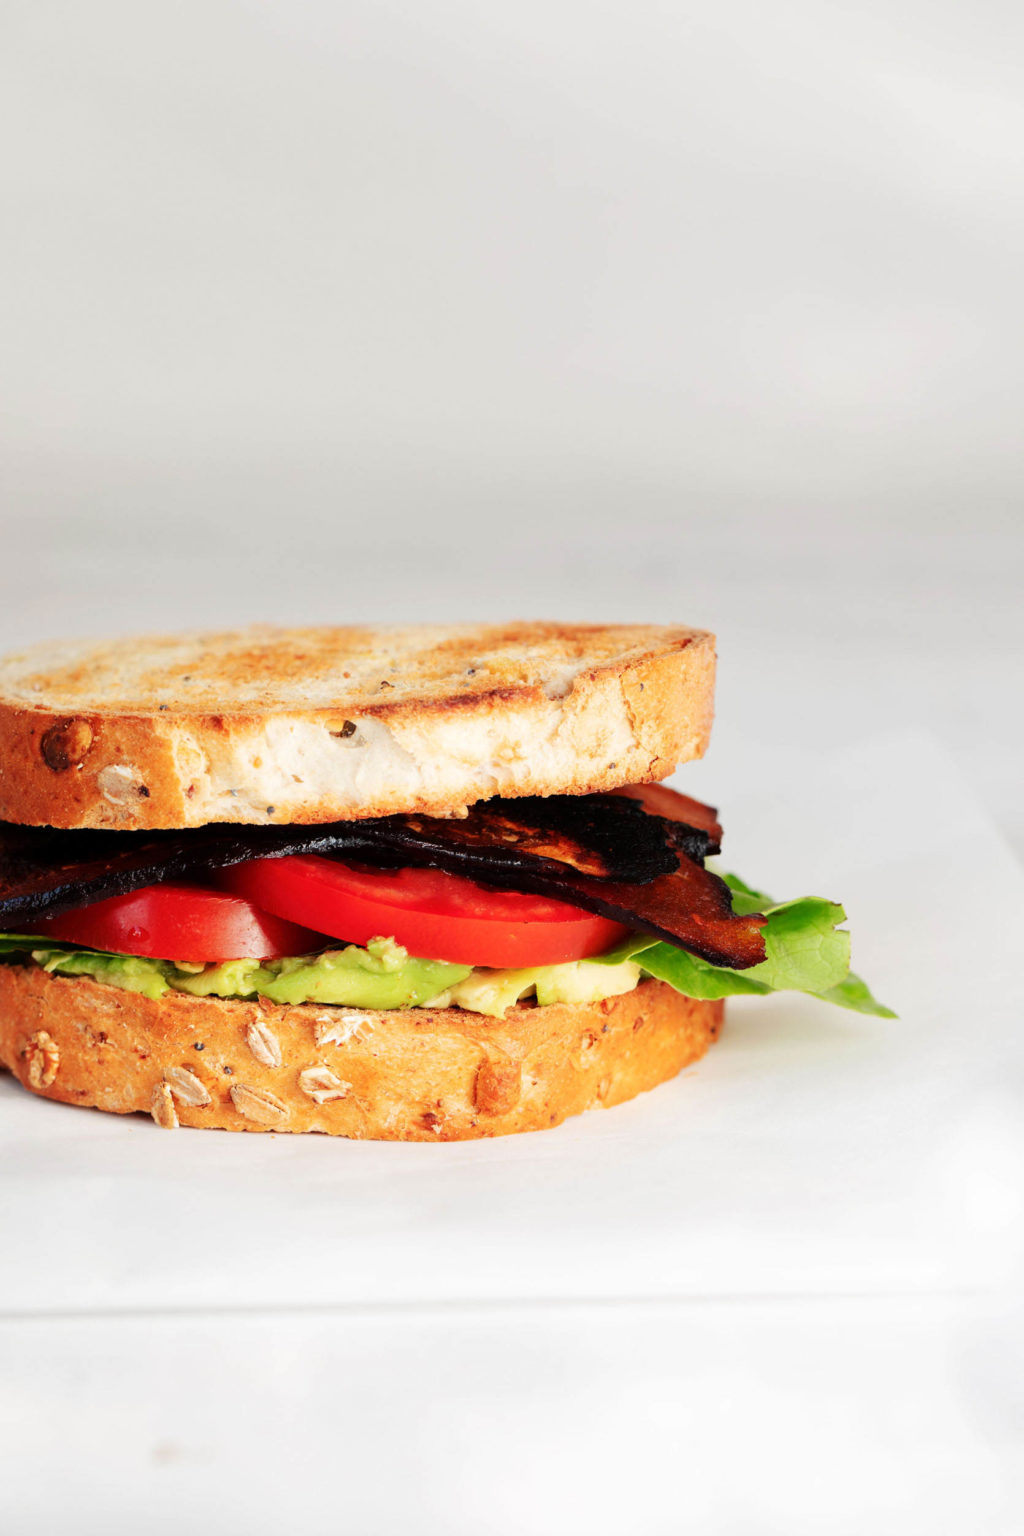 A BLT sandwich is resting on a white surface, against a gray and white background.